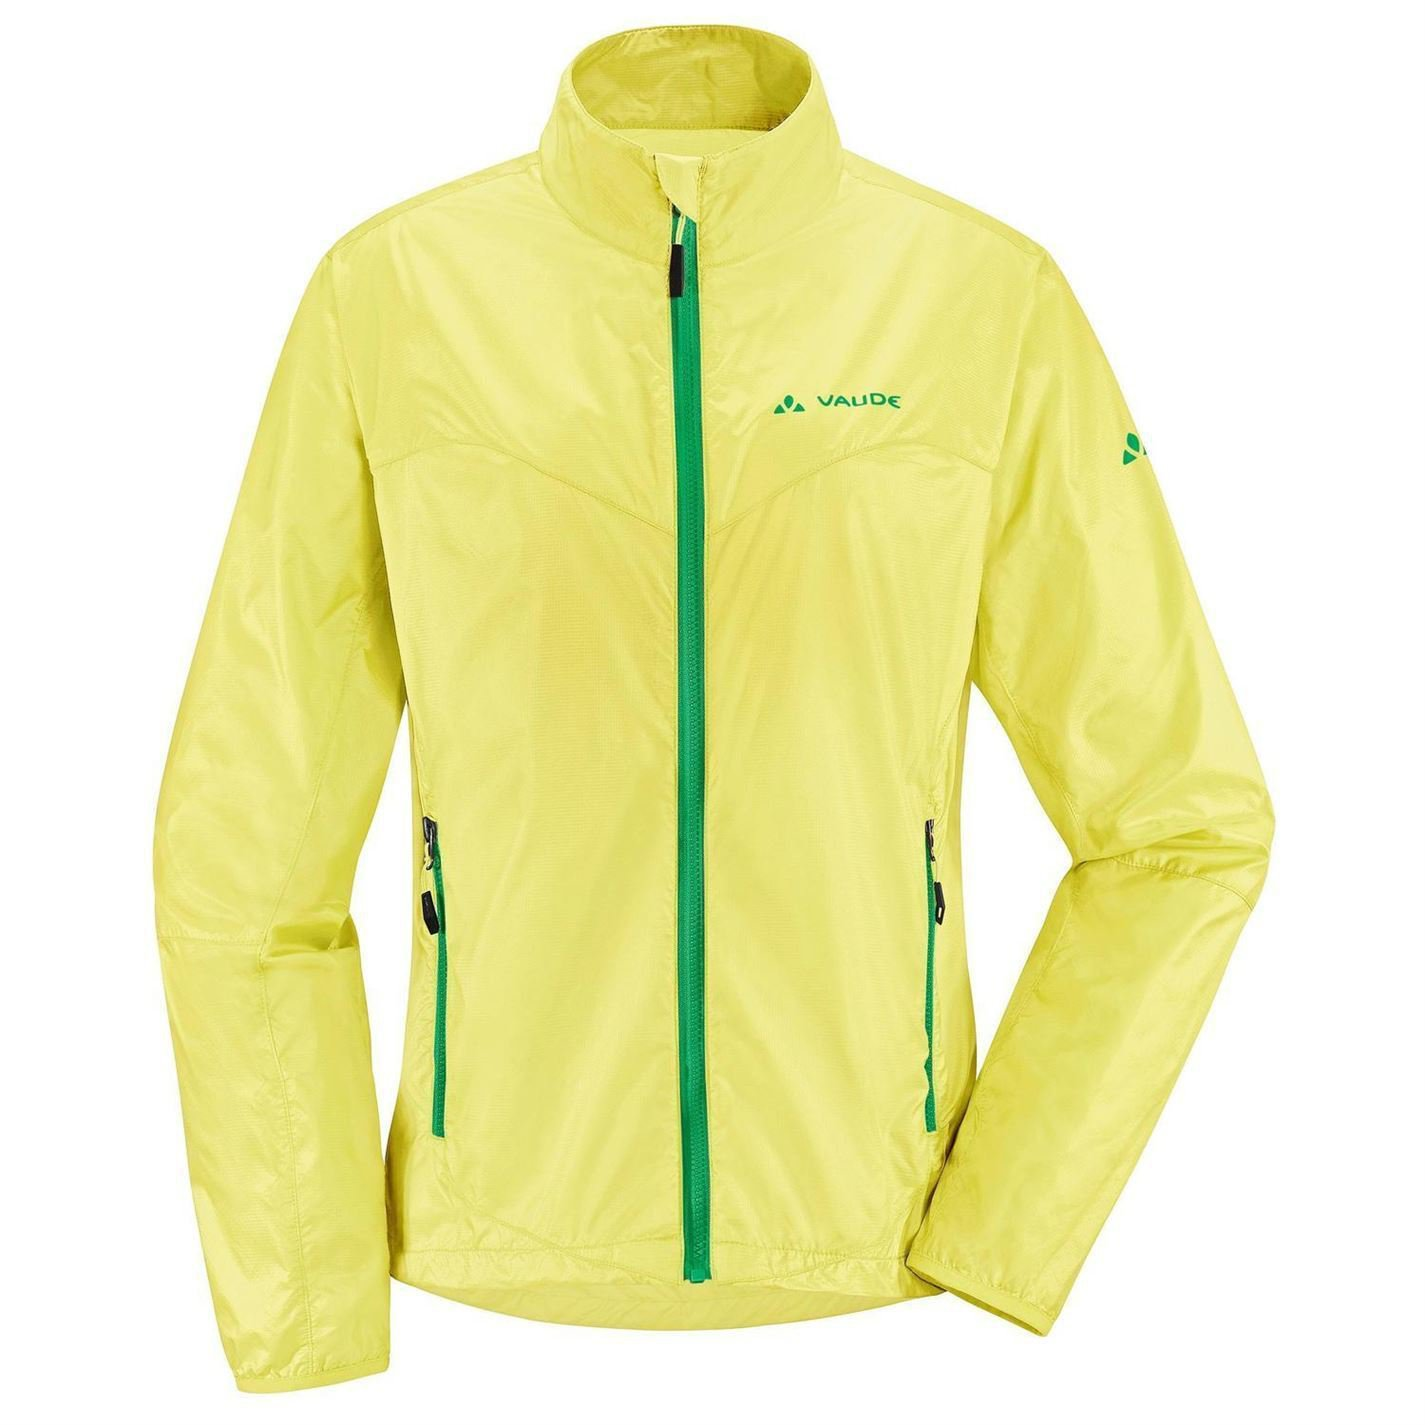 Vaude Womens Jacket Dyde Ladies Long Sleeve Zip Cycle Cycling